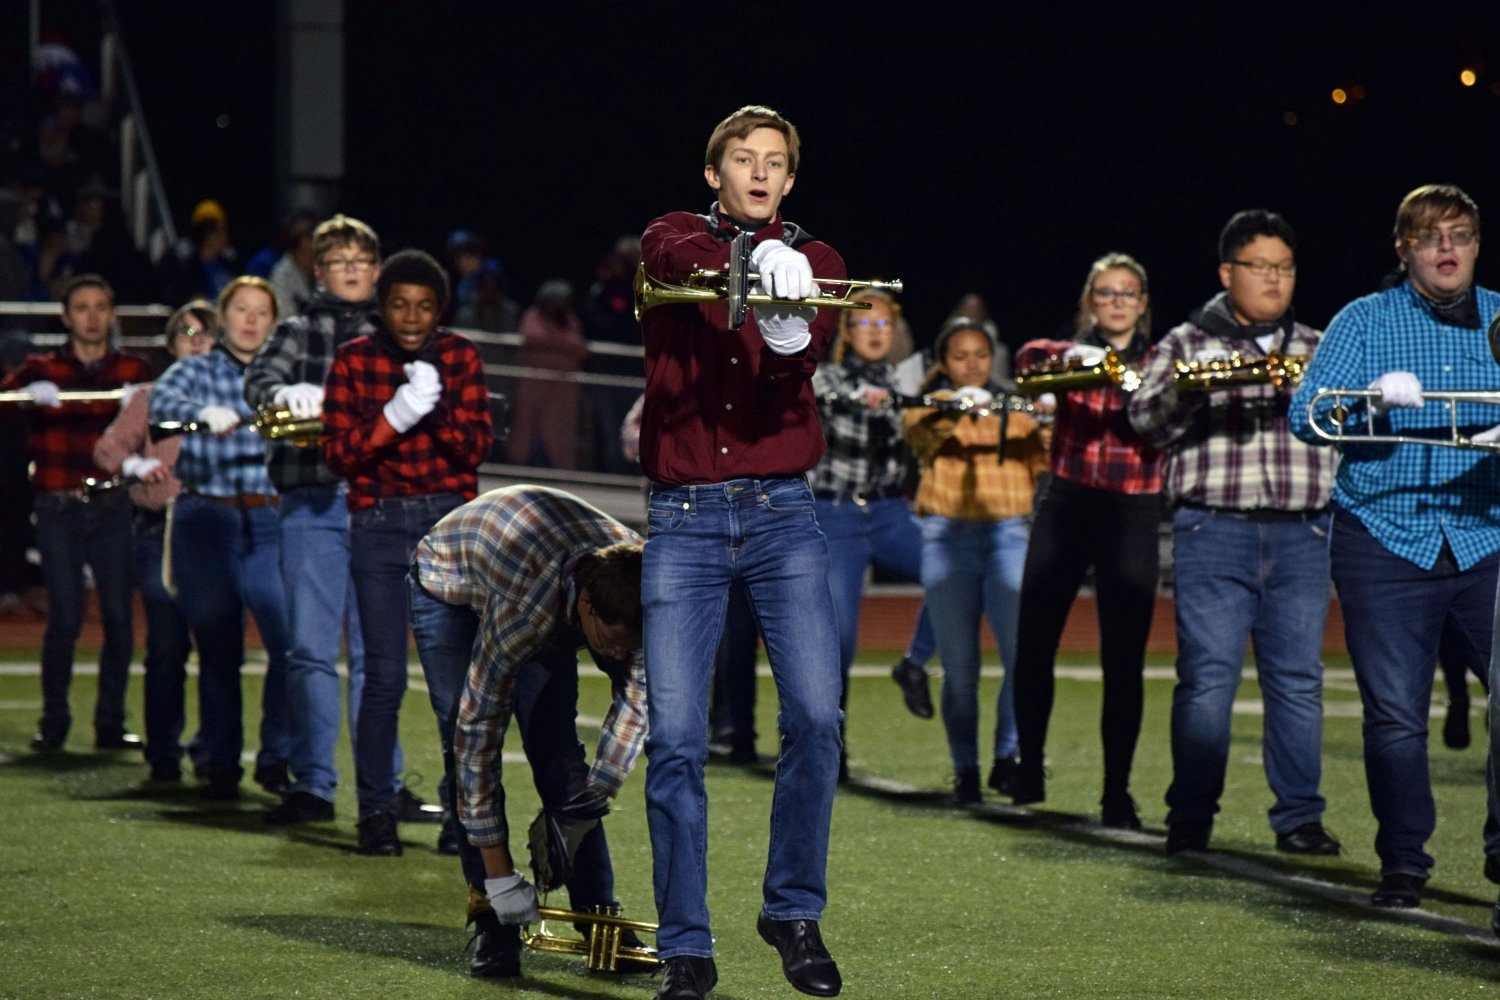 Junior ? performs with the MHS Big Blue Marching Band during their halftime show. The performance featured country music and band students dressed in classic blue jeans and flannels to sell the show. Photo by Hailey Eilert